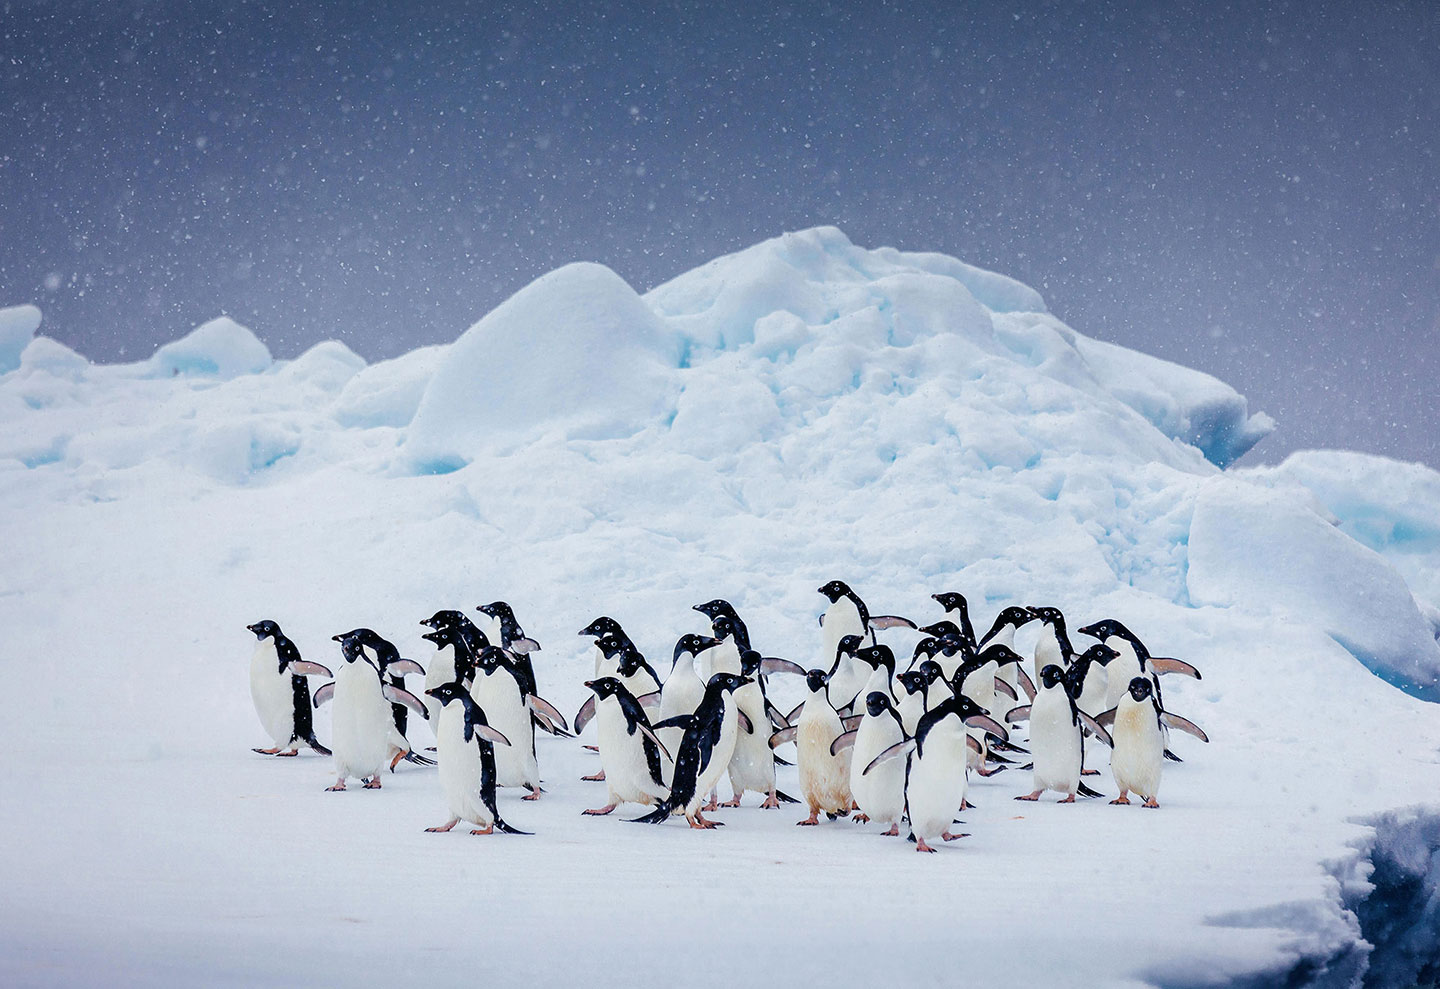 How to see penguins in Antarctica safely